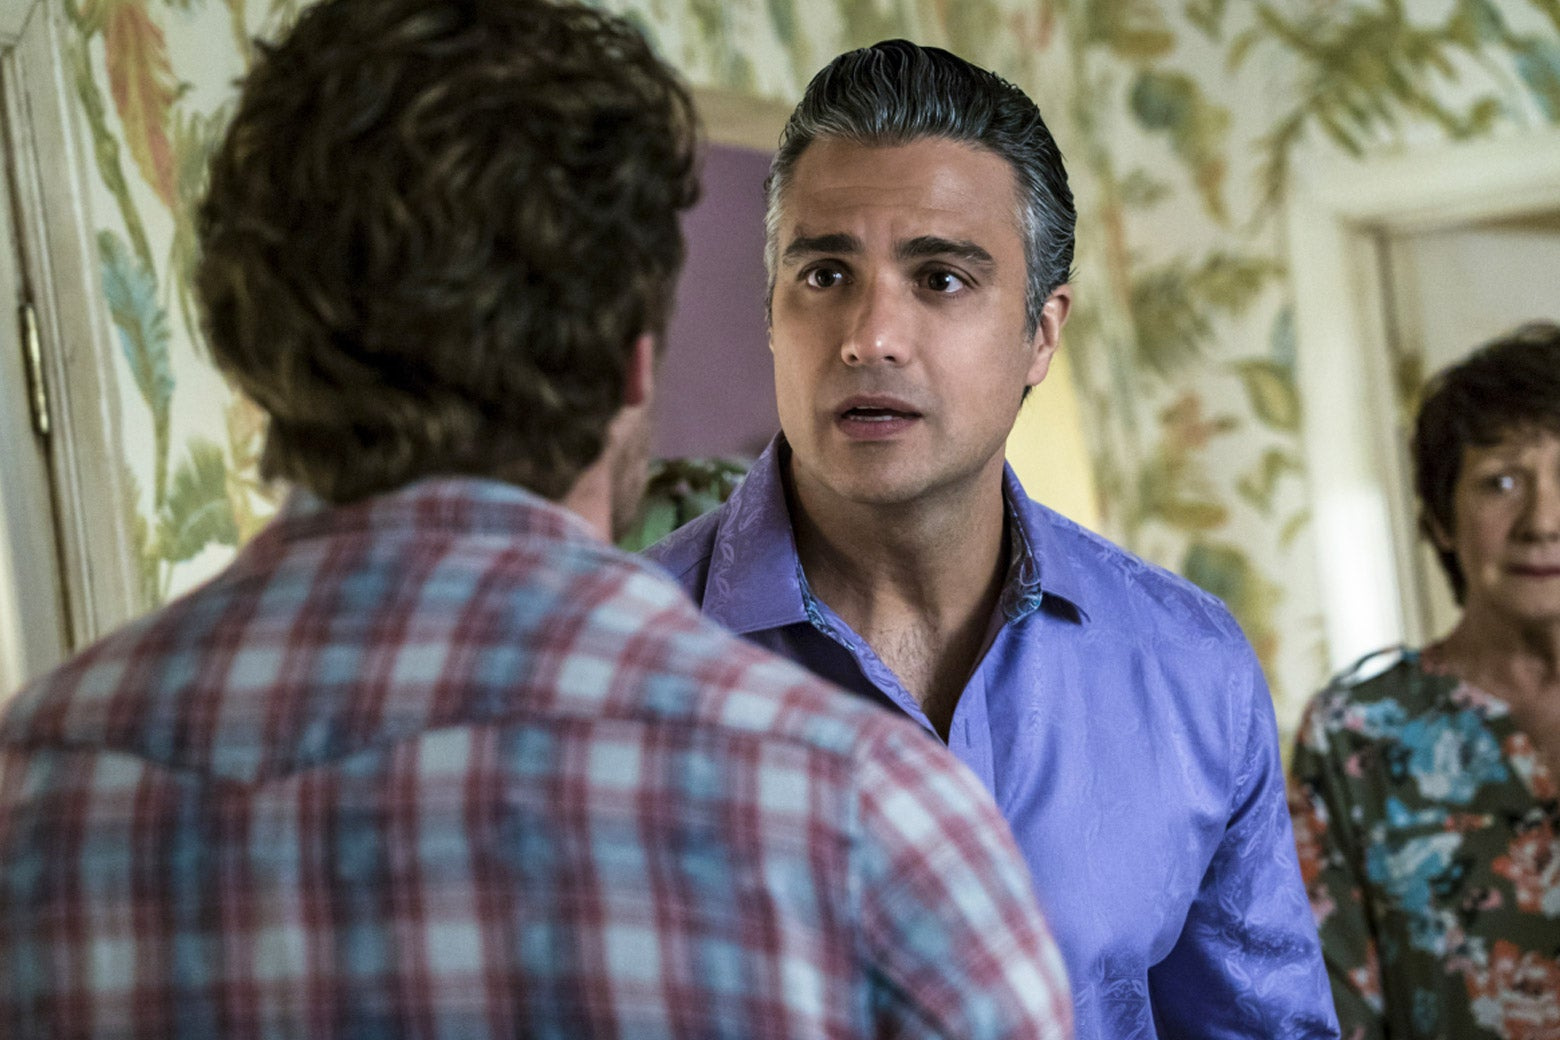 In a still from Jane the Virgin, Rogelio and Alba look upset, facing Jason.